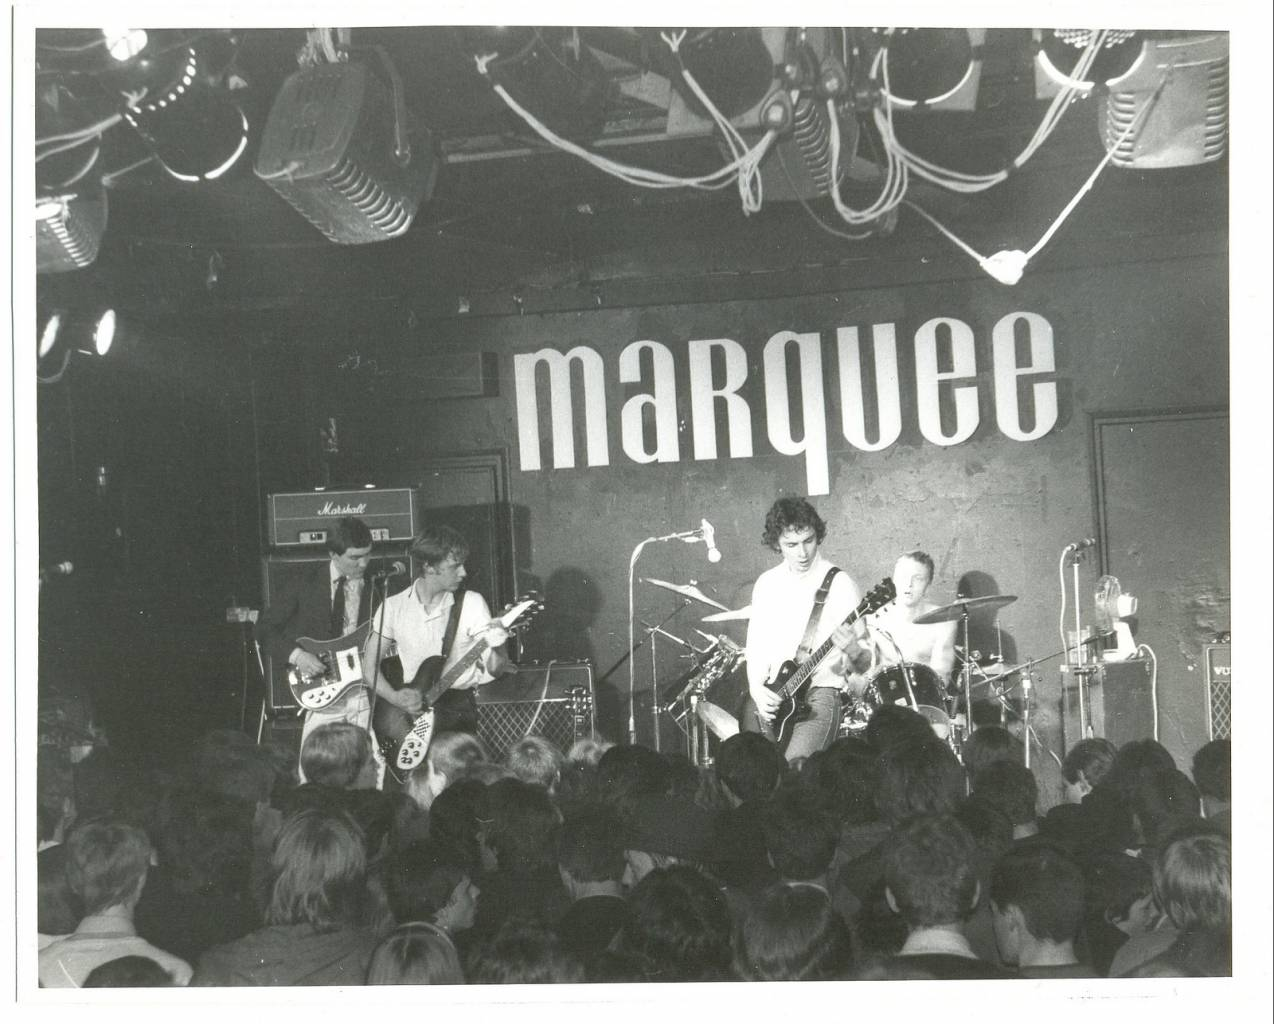 The Chords played at the Marquee in 1979.